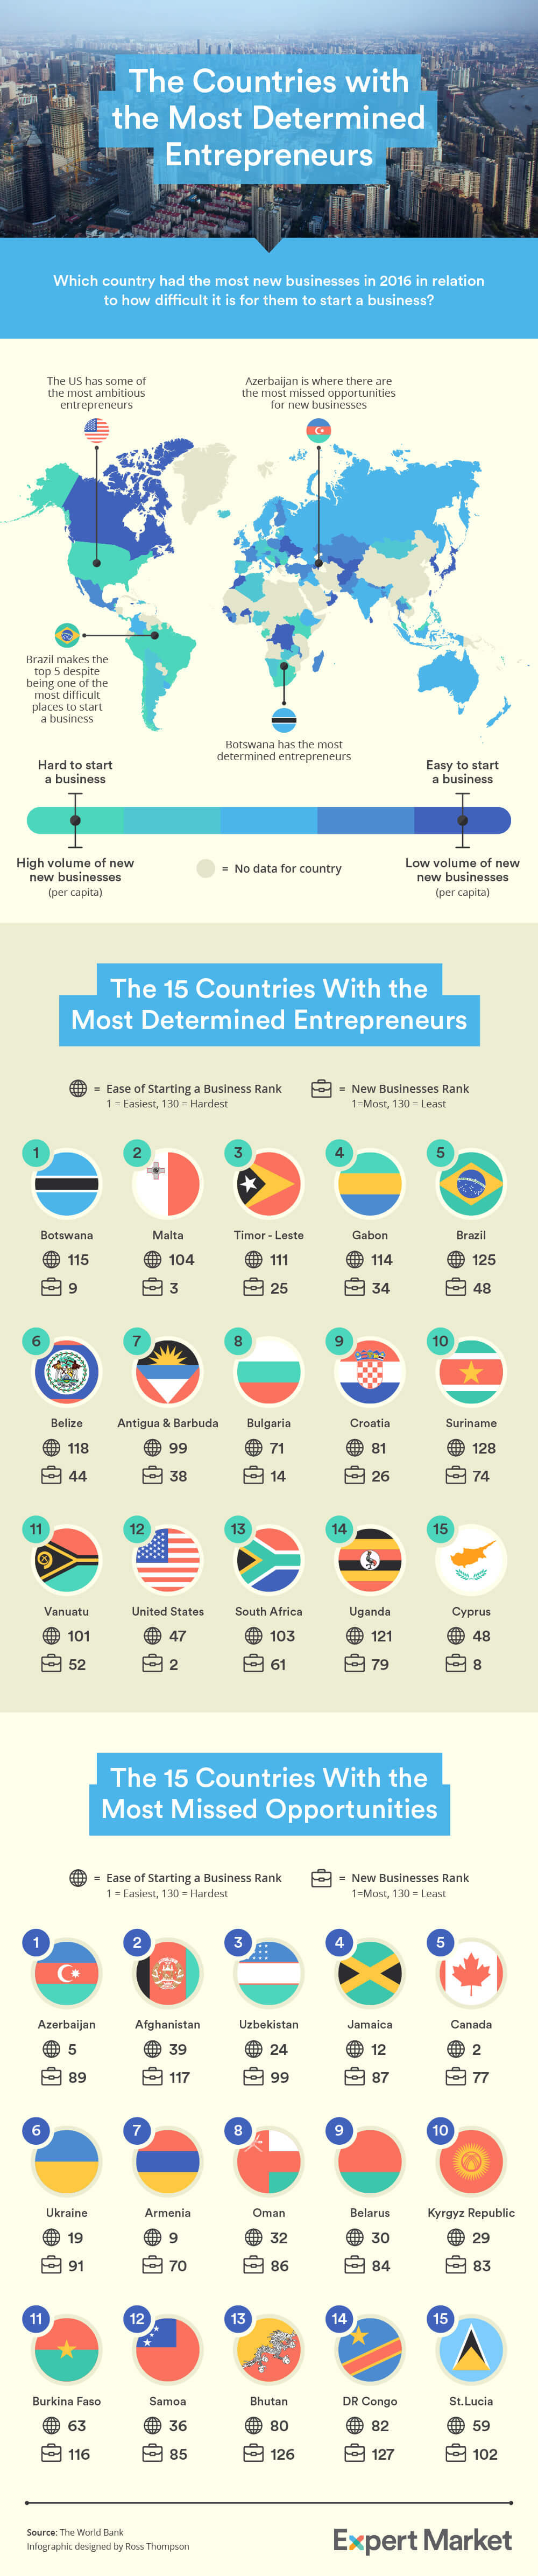 The Countries With the Most Determined Entrepreneurs (Infographic)